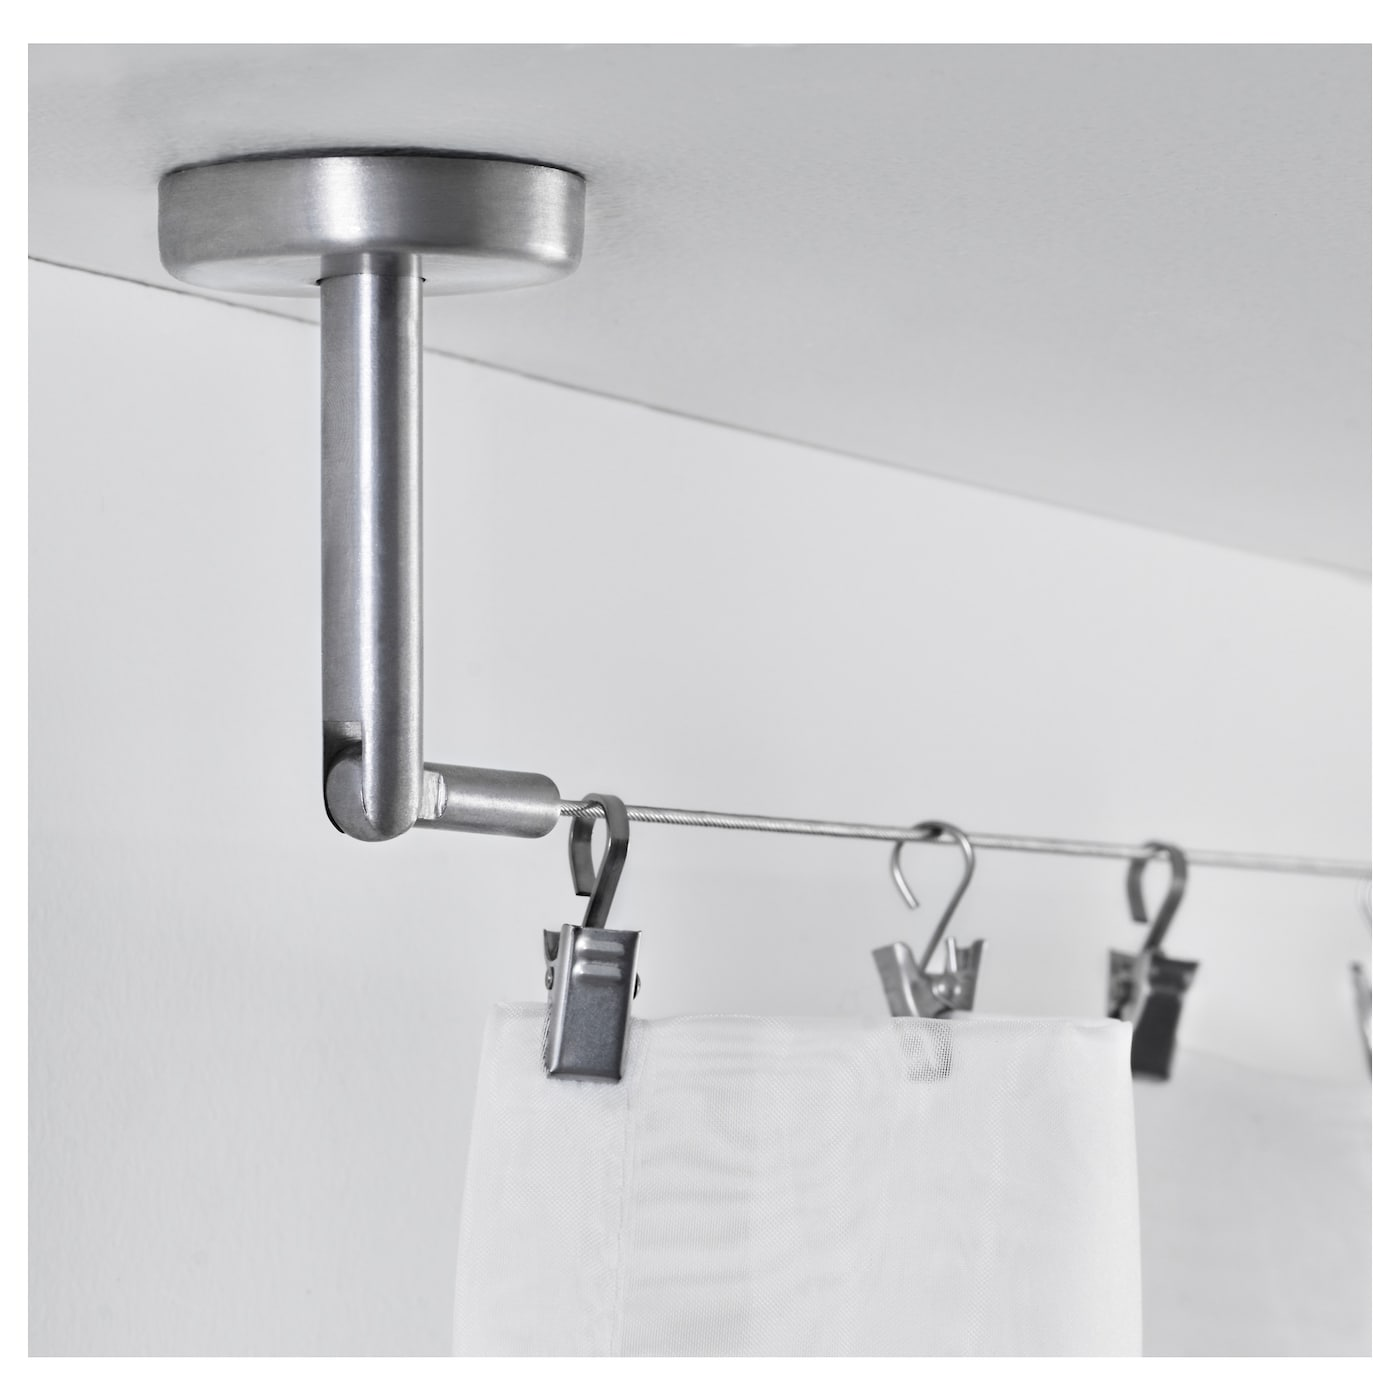 IKEA DIGNITET curtain wire Fittings with adjustable angle for more flexible use.